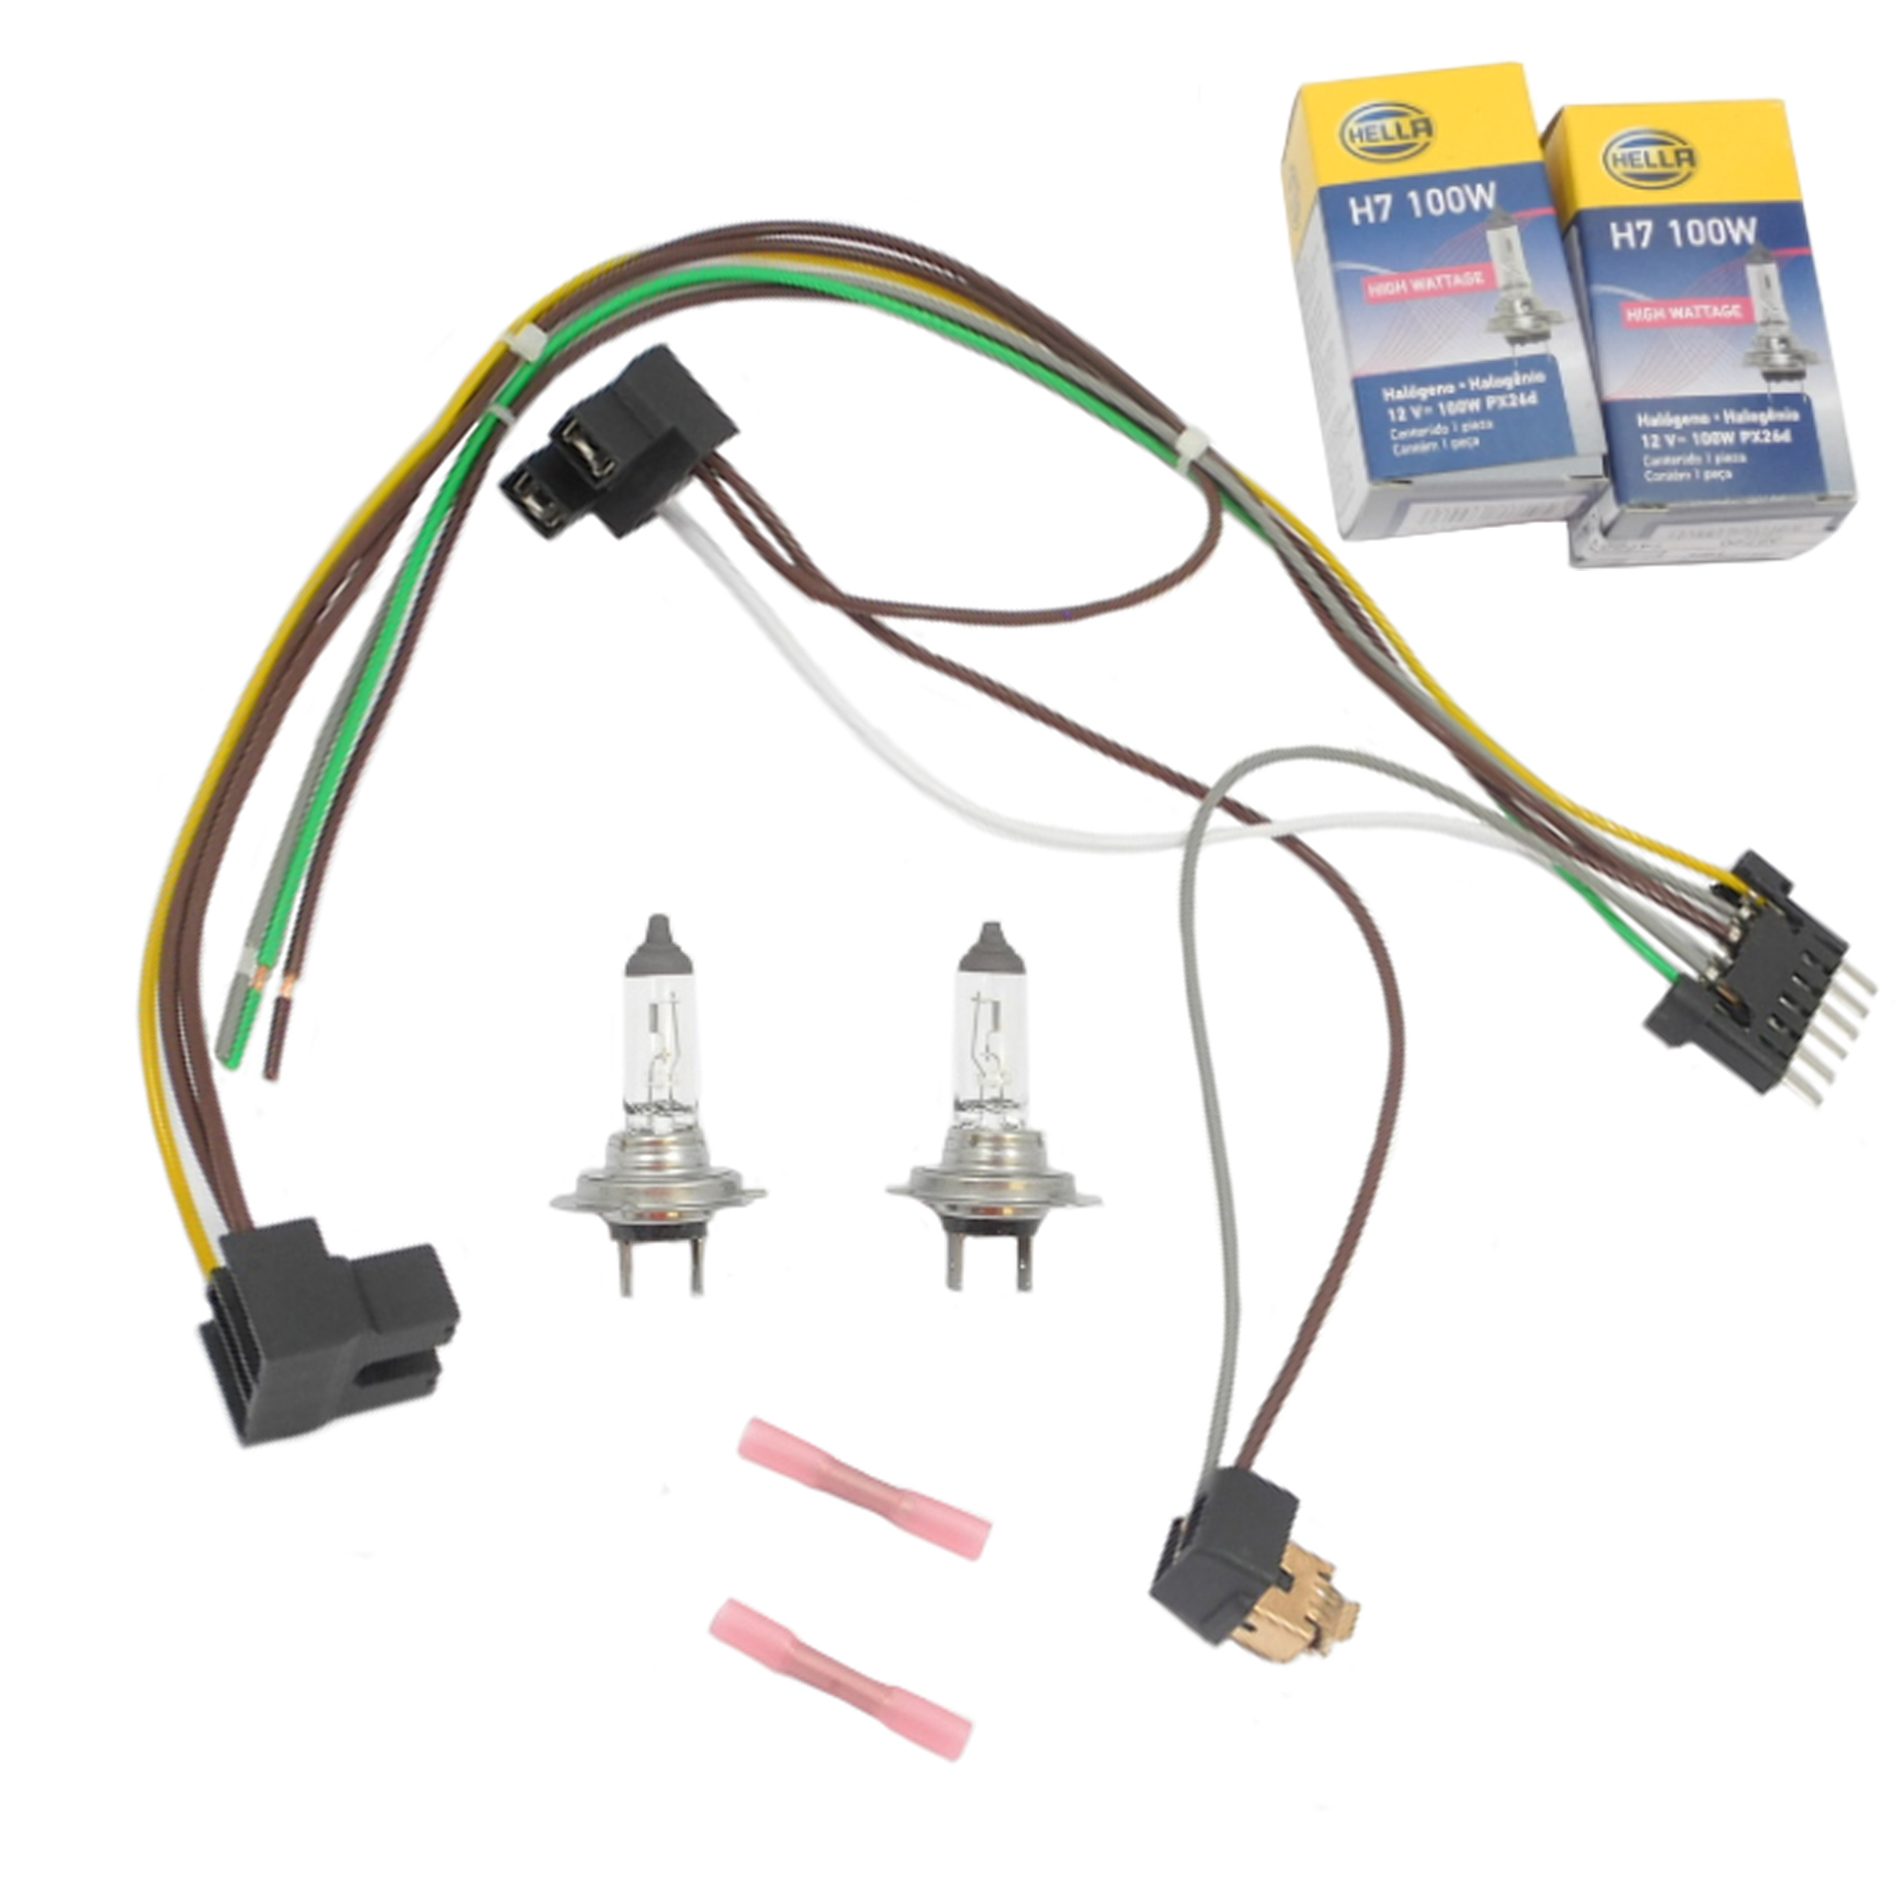 Enjoyable For S55 S600 Benz Headlight Wiring Harness H7 100W Headlight Bulb Wiring Digital Resources Funapmognl